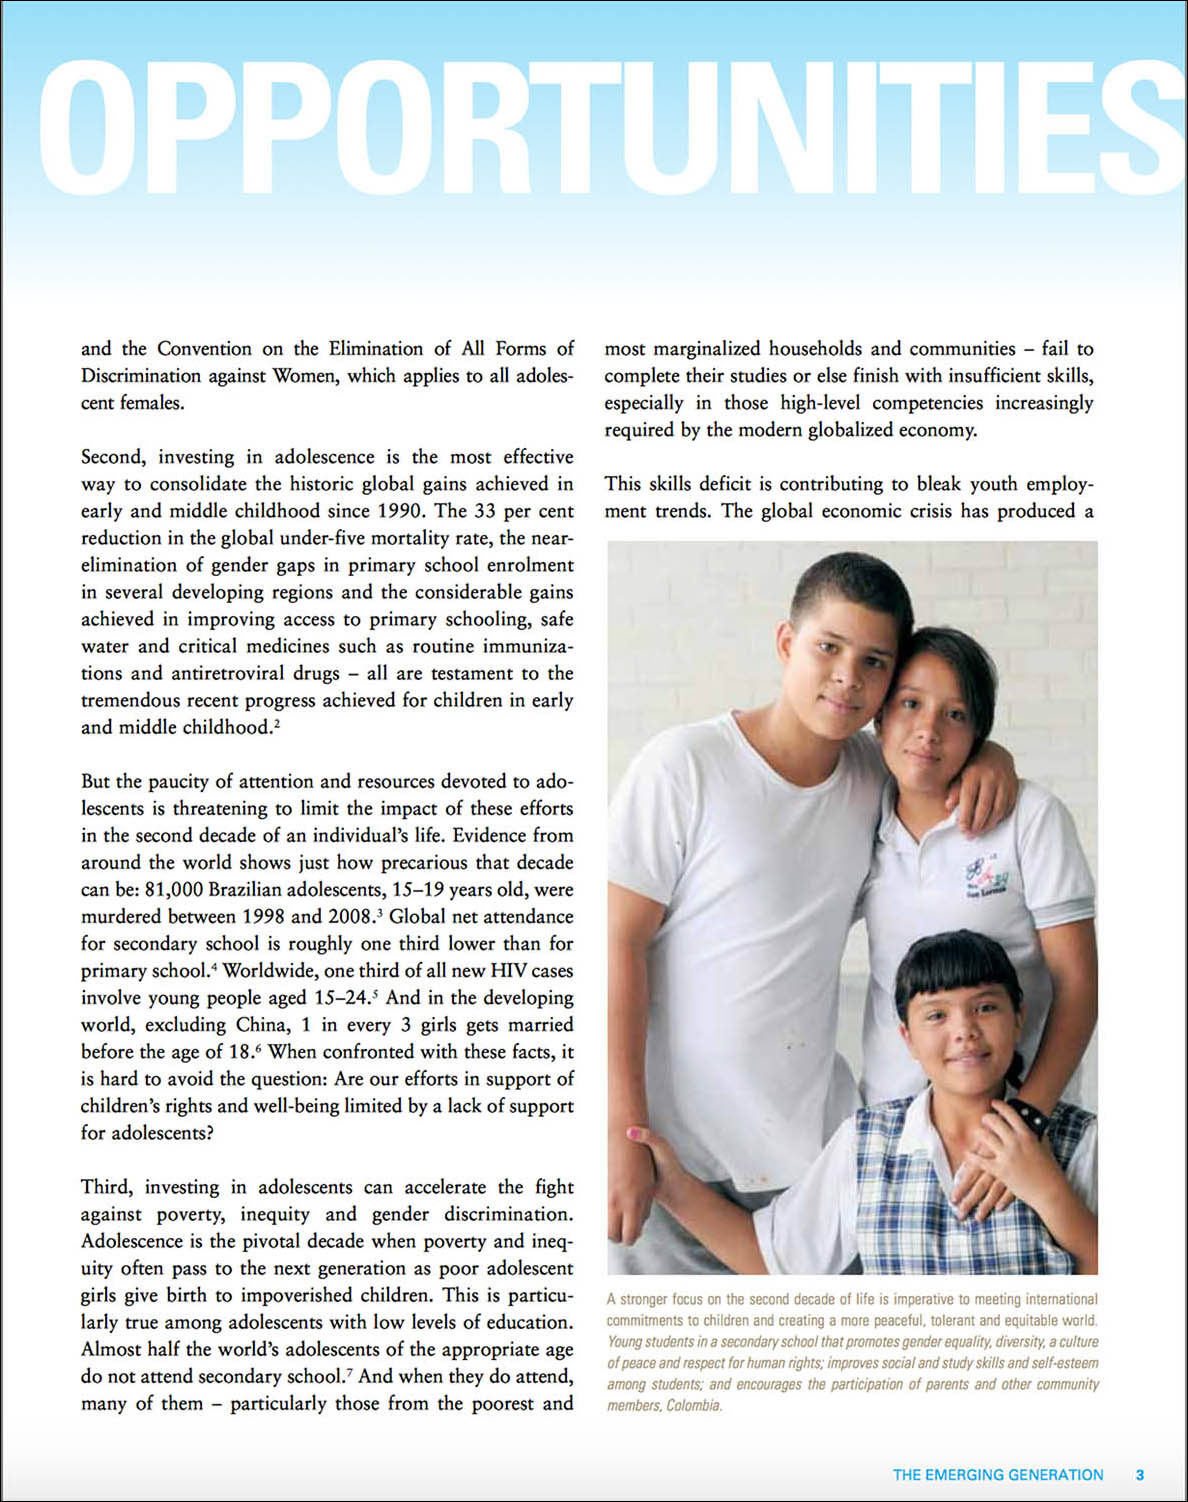 Screen capture of a page from a report showing 2 adolescent girls and an adolescent boy in Colombia.